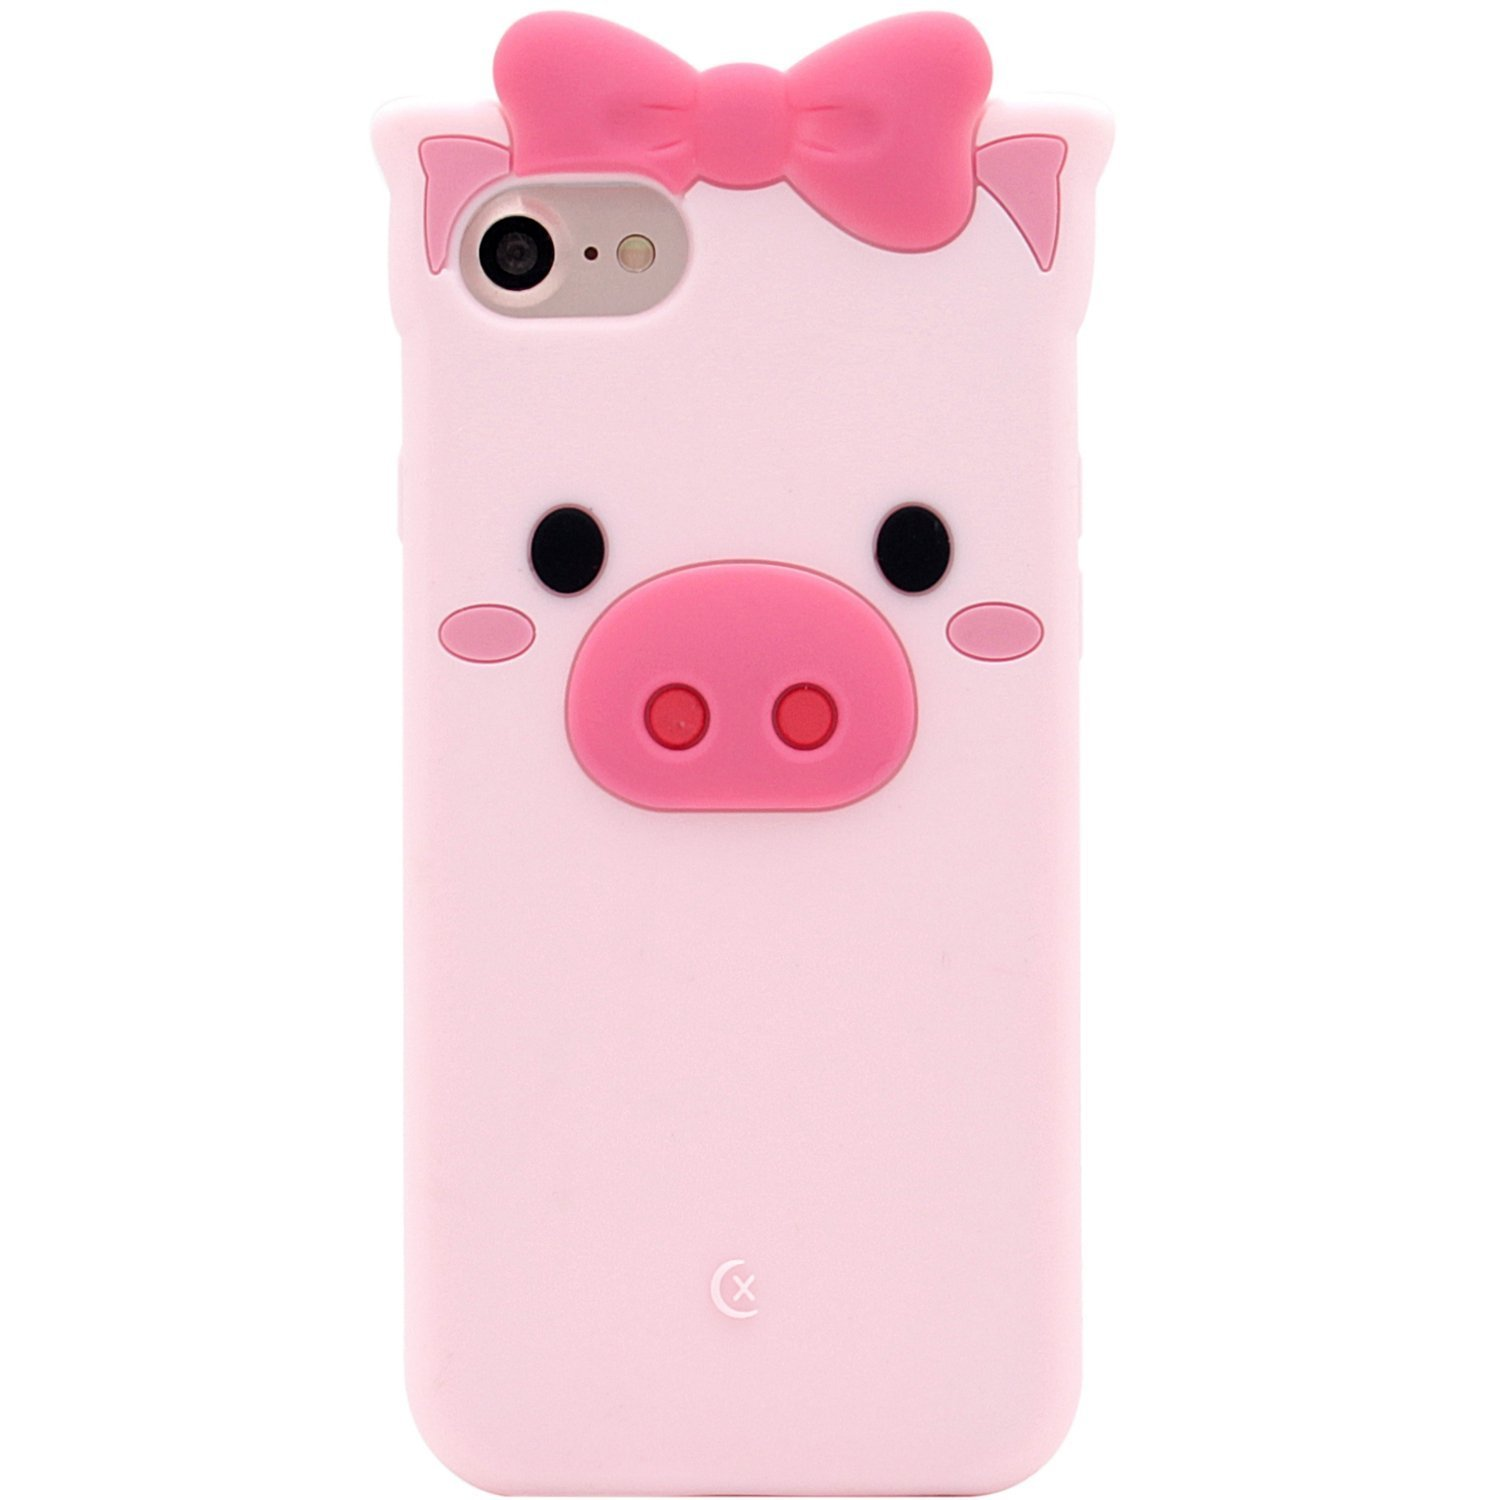 the best attitude d6cd2 12a07 Pink Piggy Phone Case, Anya 3D Silicone Cute Pig Bowknot Cartoon Animals  Soft Protective Slim Rubber Bumper Protective Gel Cover Shockproof Case for  ...